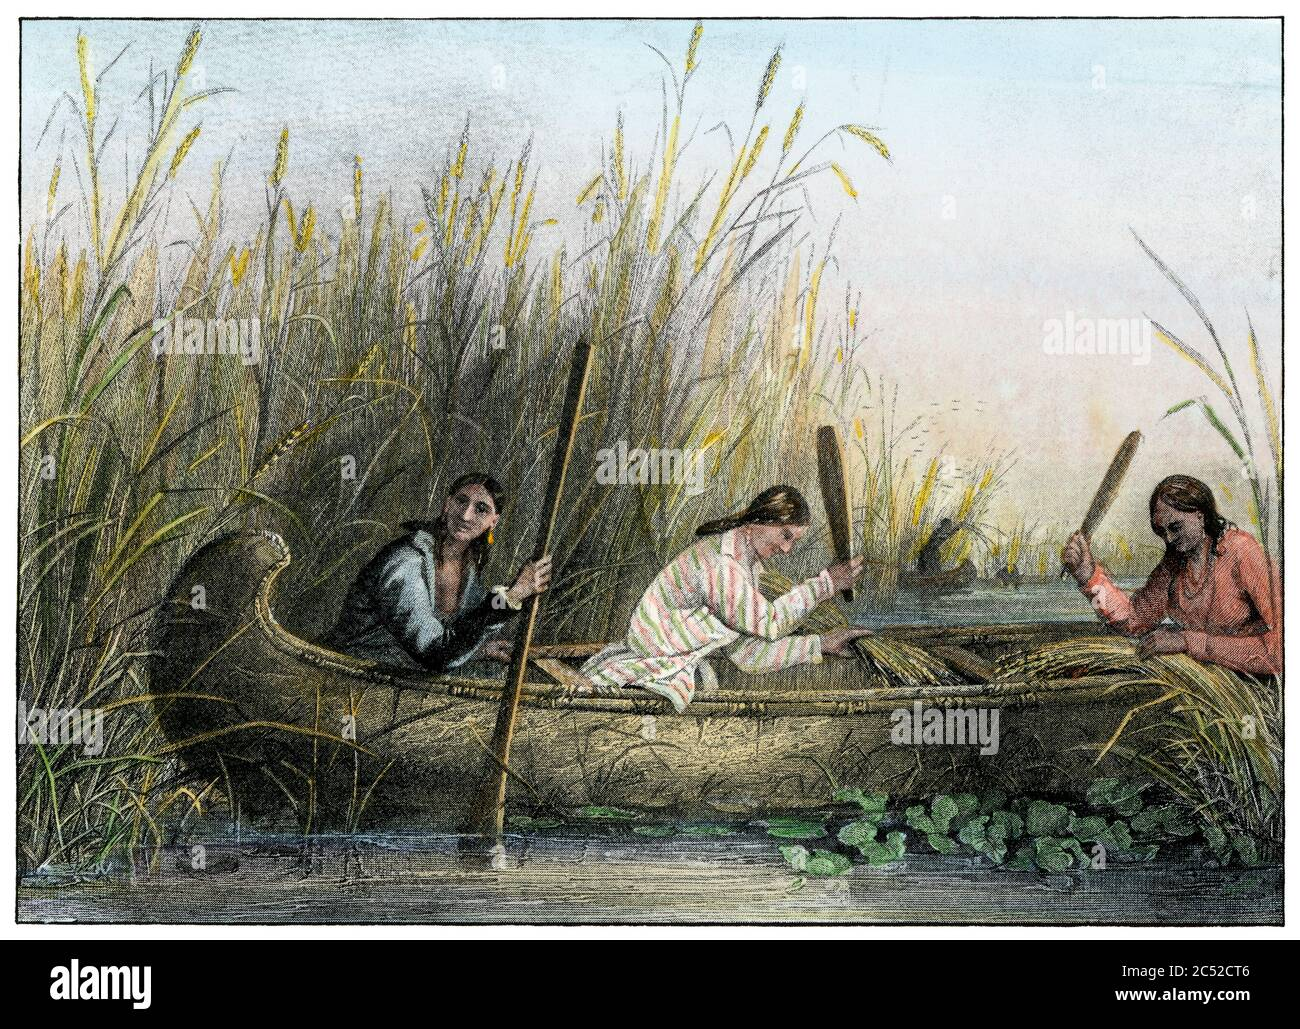 Ojibwa women gathering wild rice. Hand-colored halftone of a Seth Eastman illustration Stock Photo